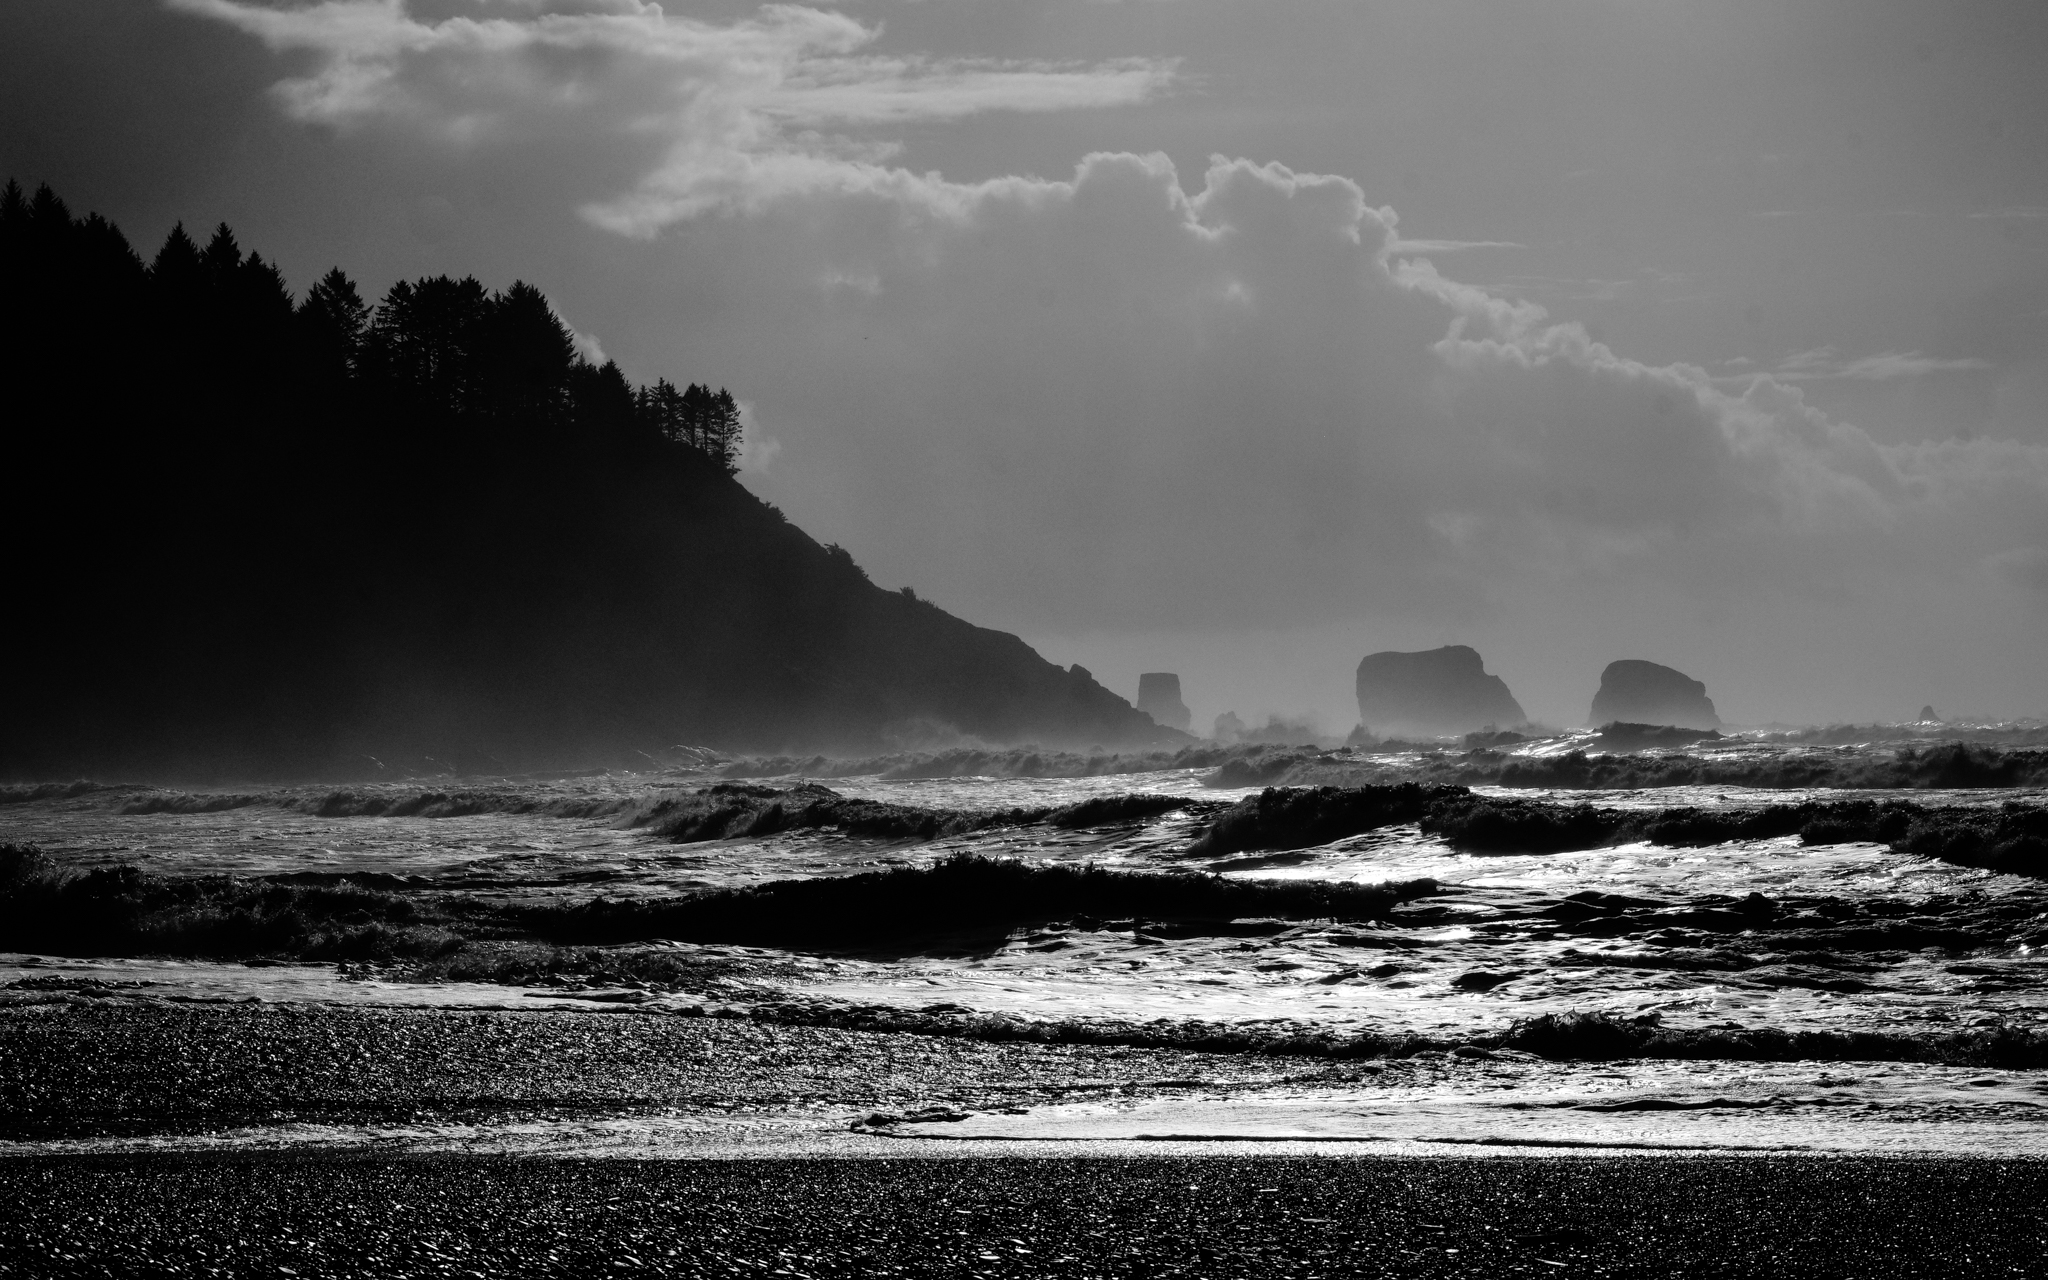 La Push, Olympic National Park. Fujifilm XH1. Some hasty Lightroom corrections and minor tweaks.